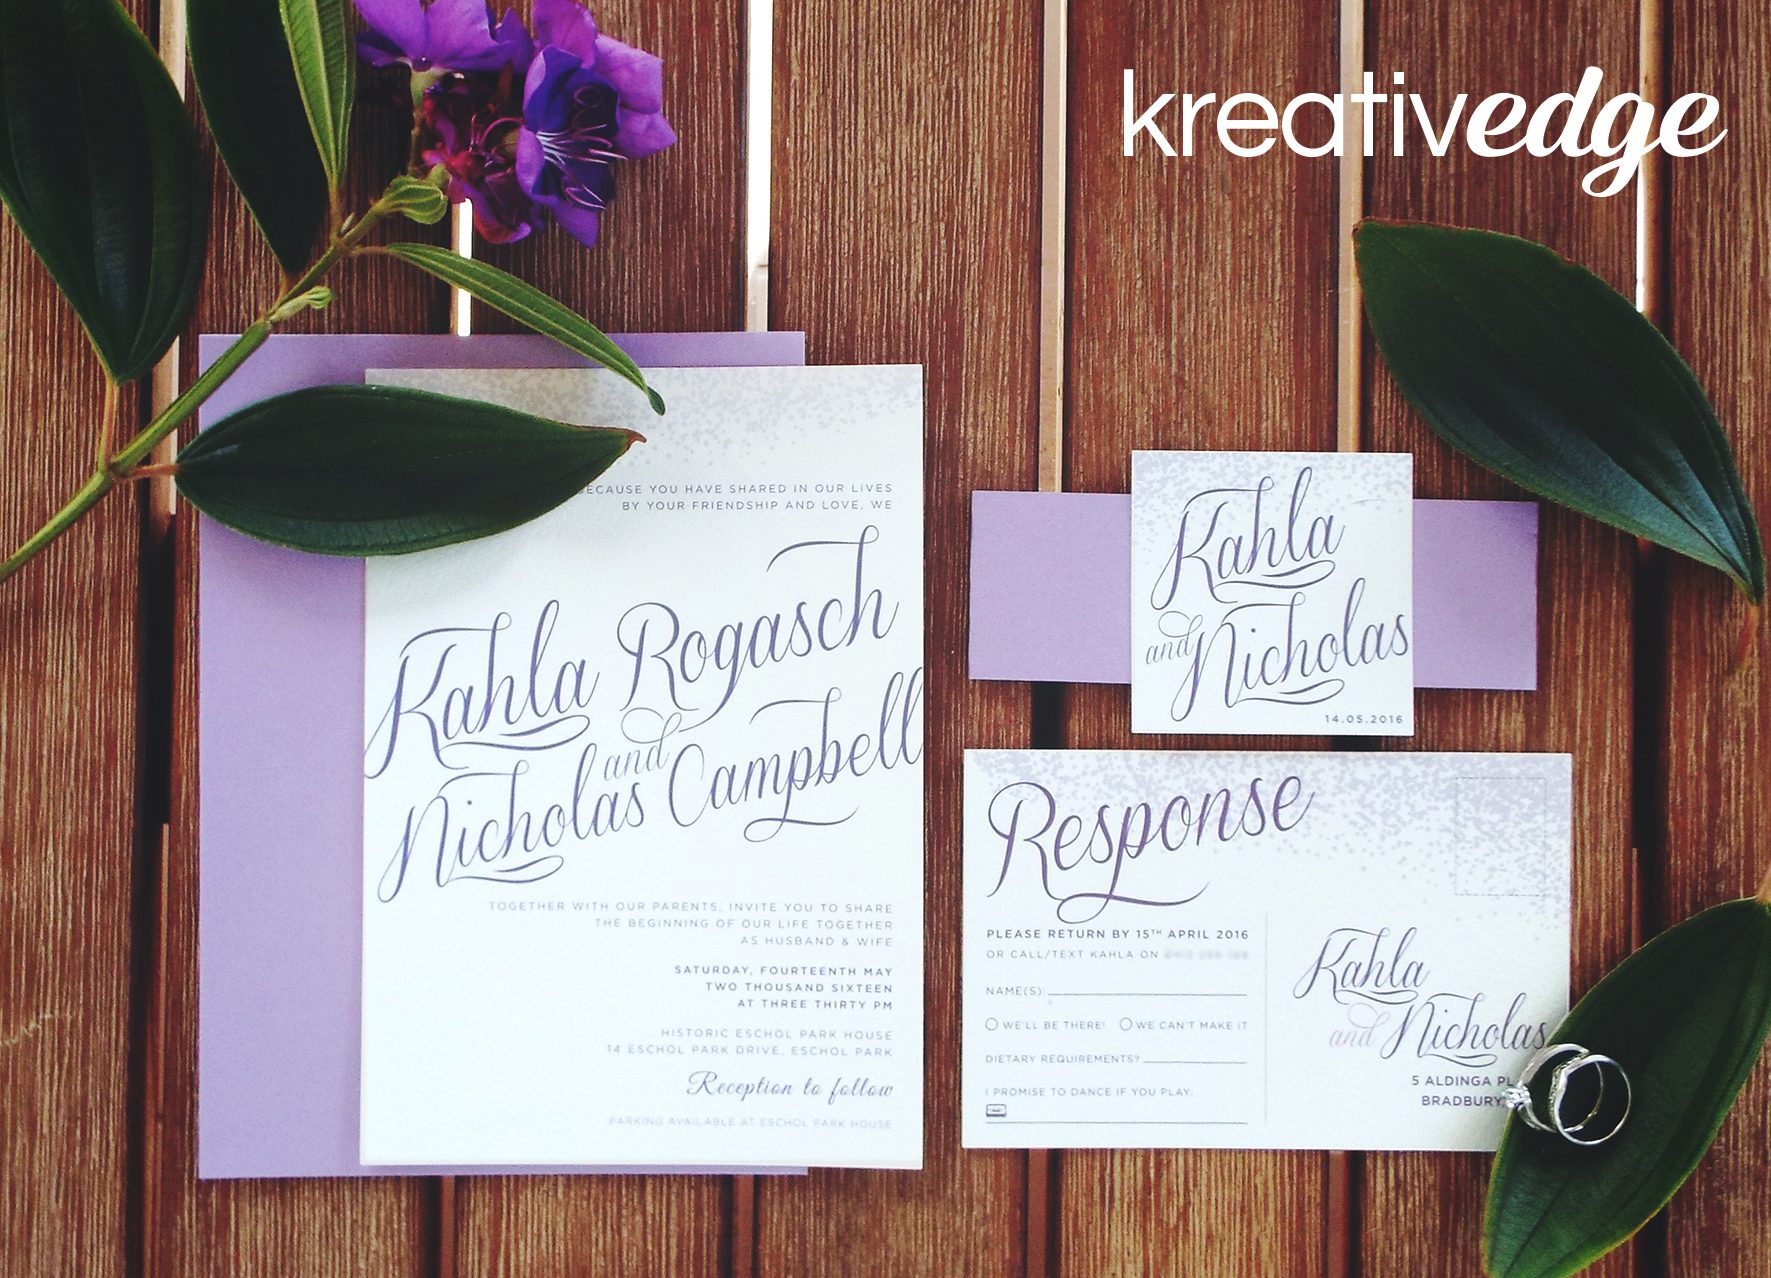 Purple Wedding Invitations for Kahla and Nicholas